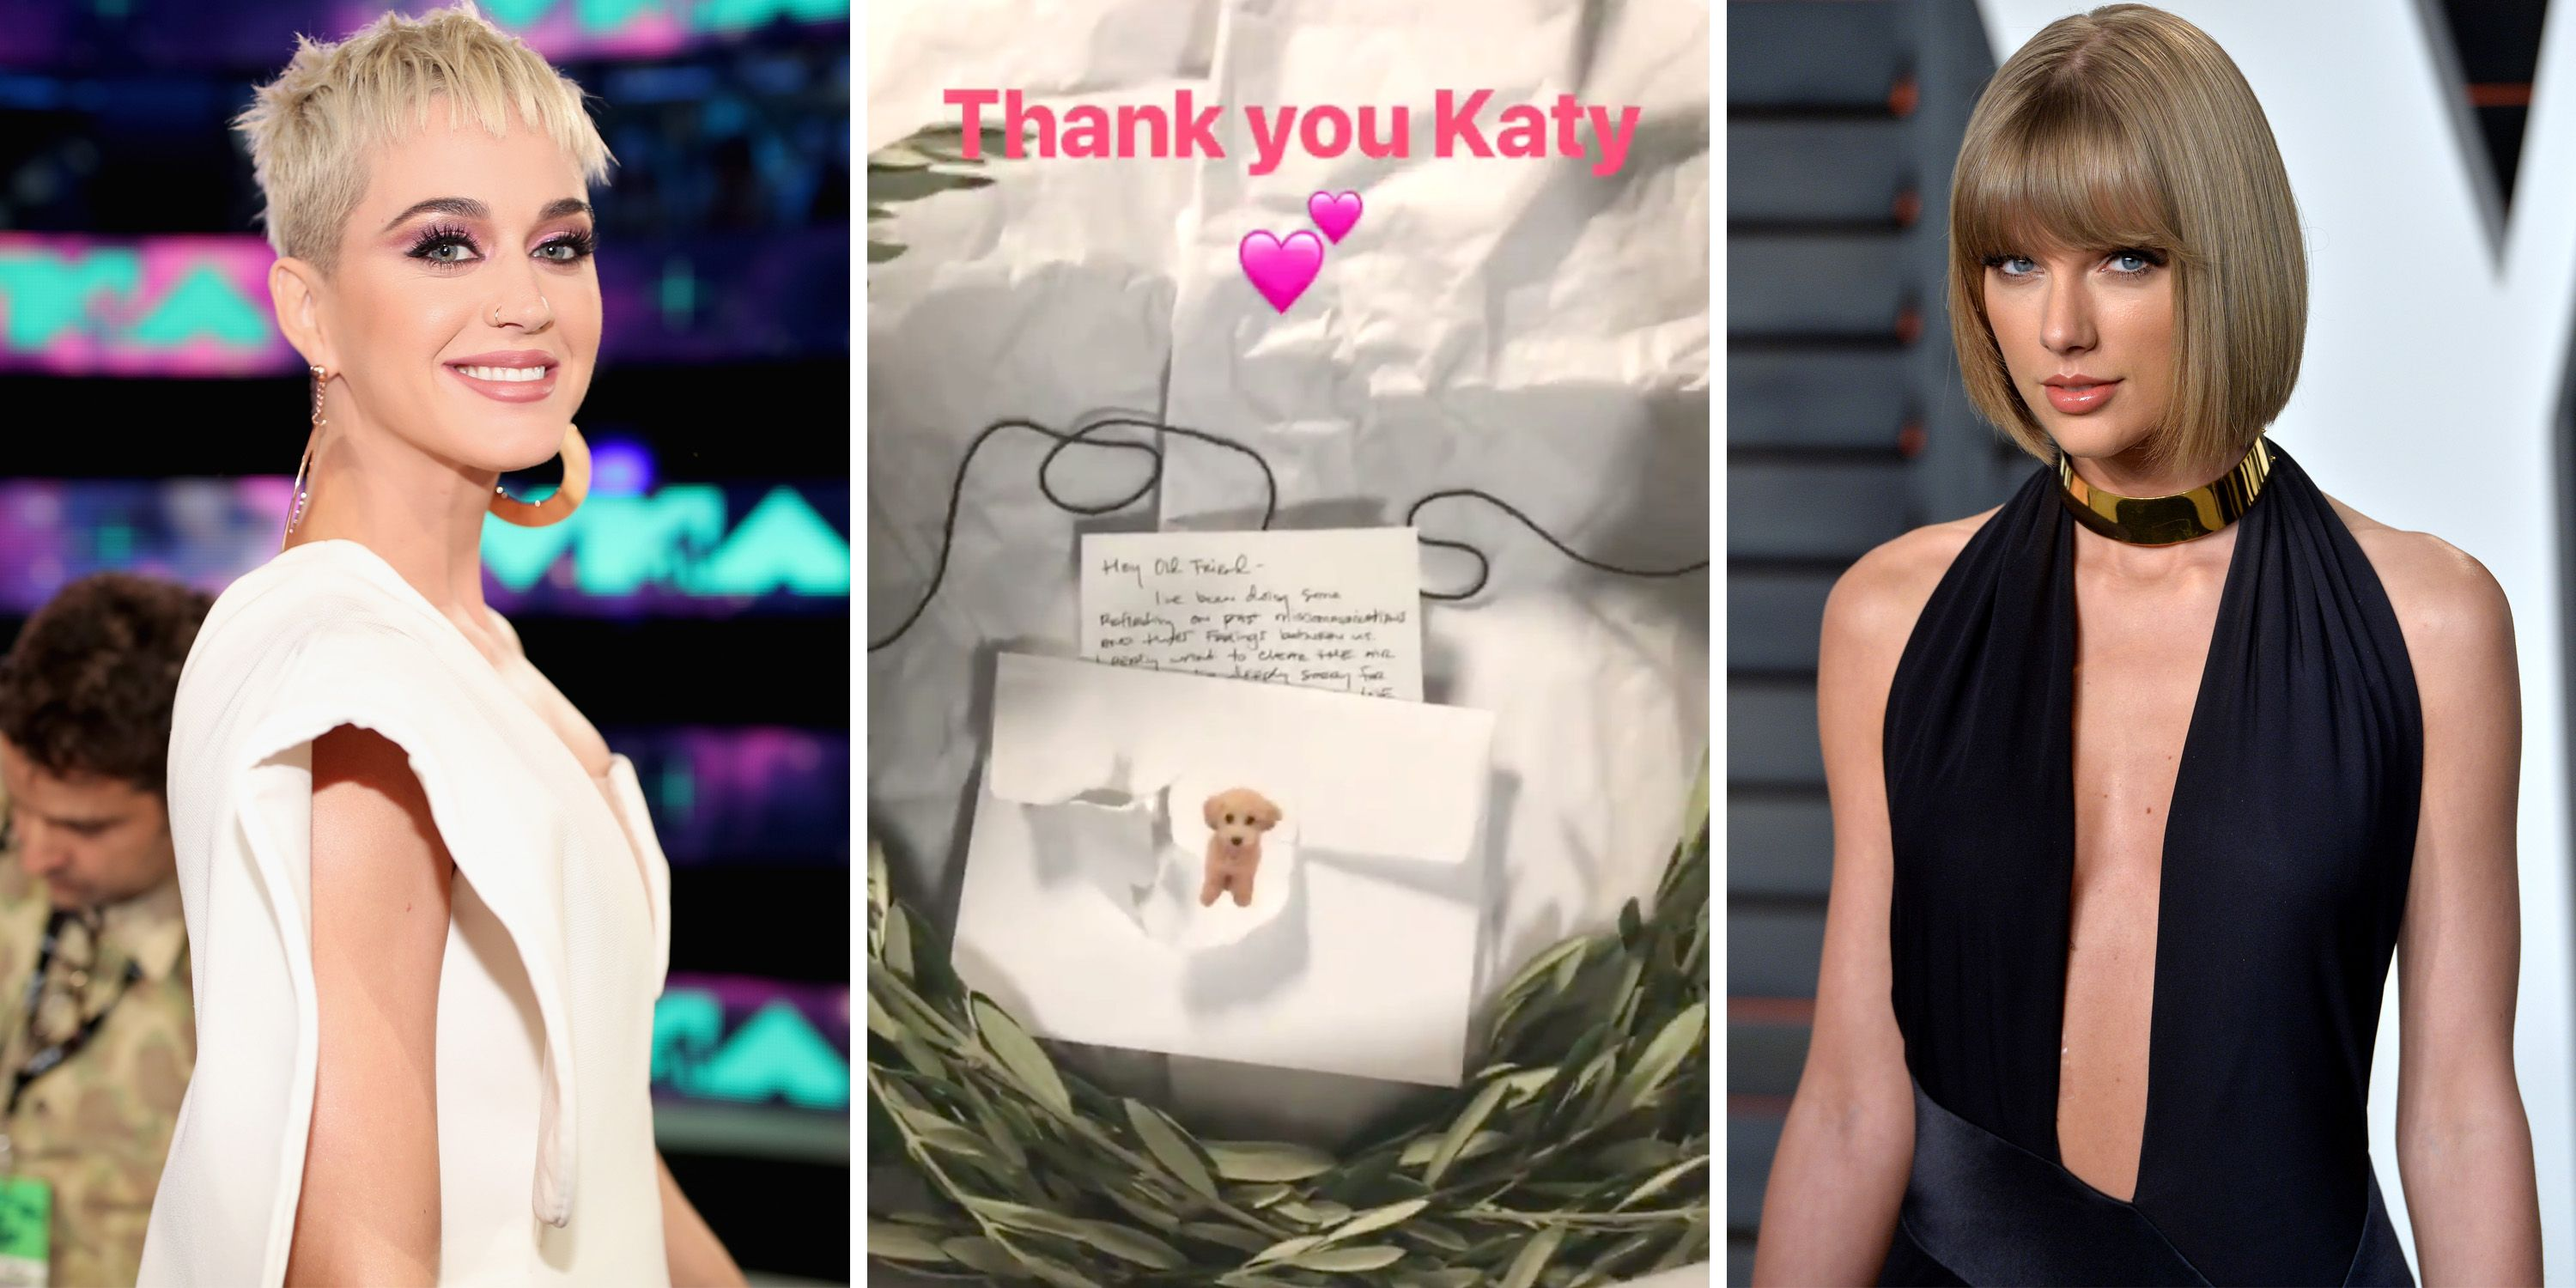 Katy Perry Officially Ends Taylor Swift Feud With An Olive Branch